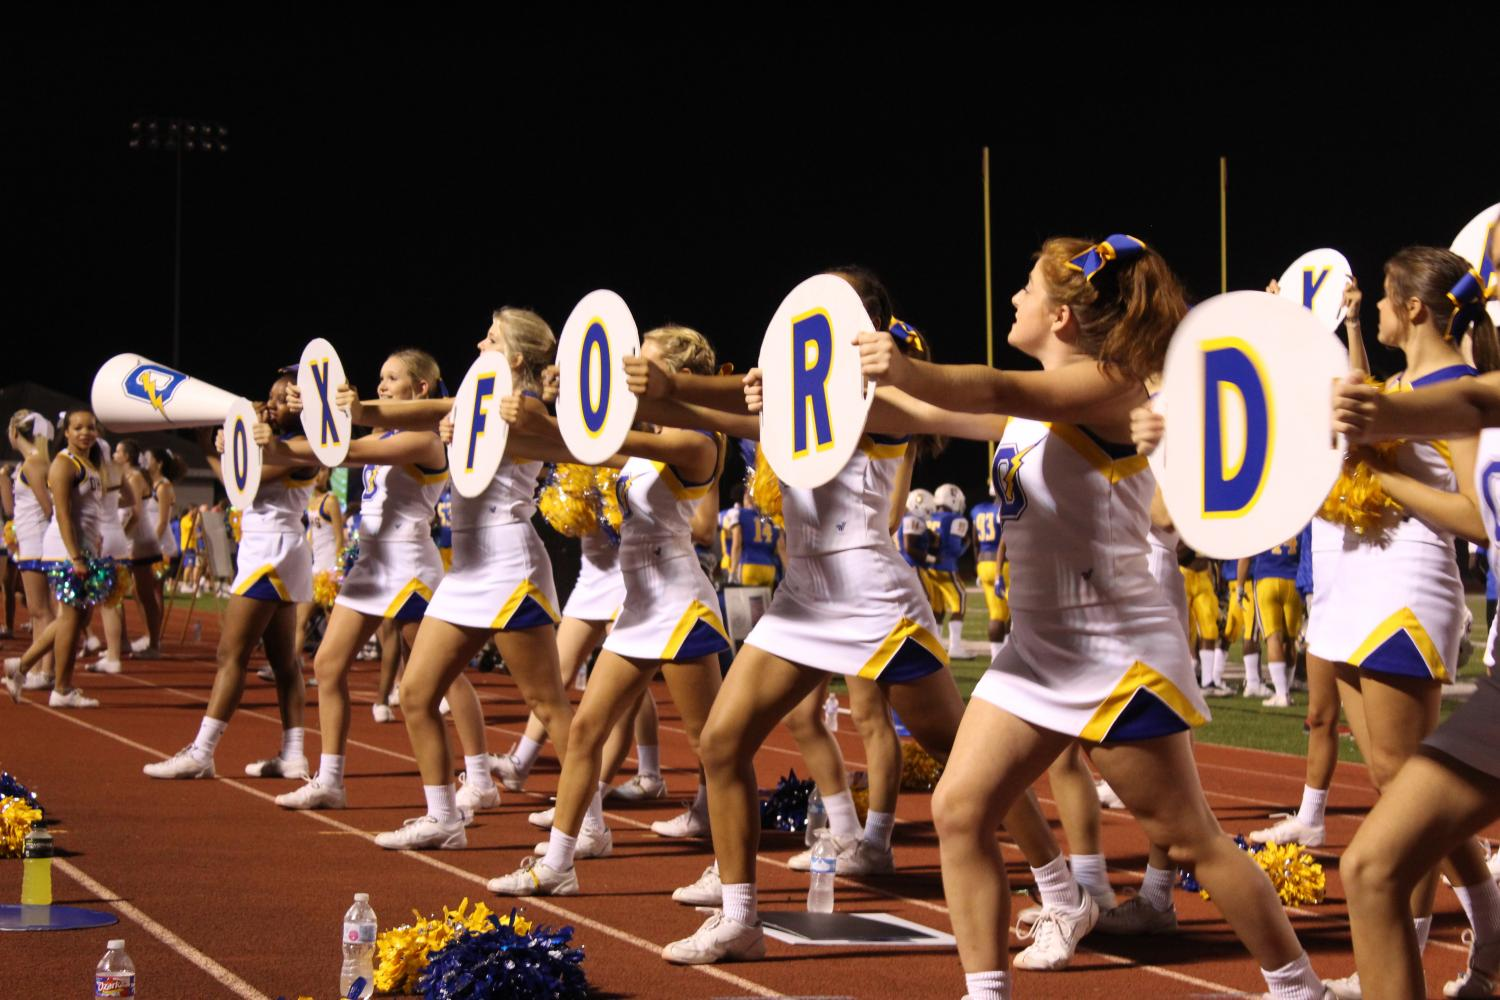 Cheerleaders on the varsity team cheer on the Chargers at their game against Pontotoc.